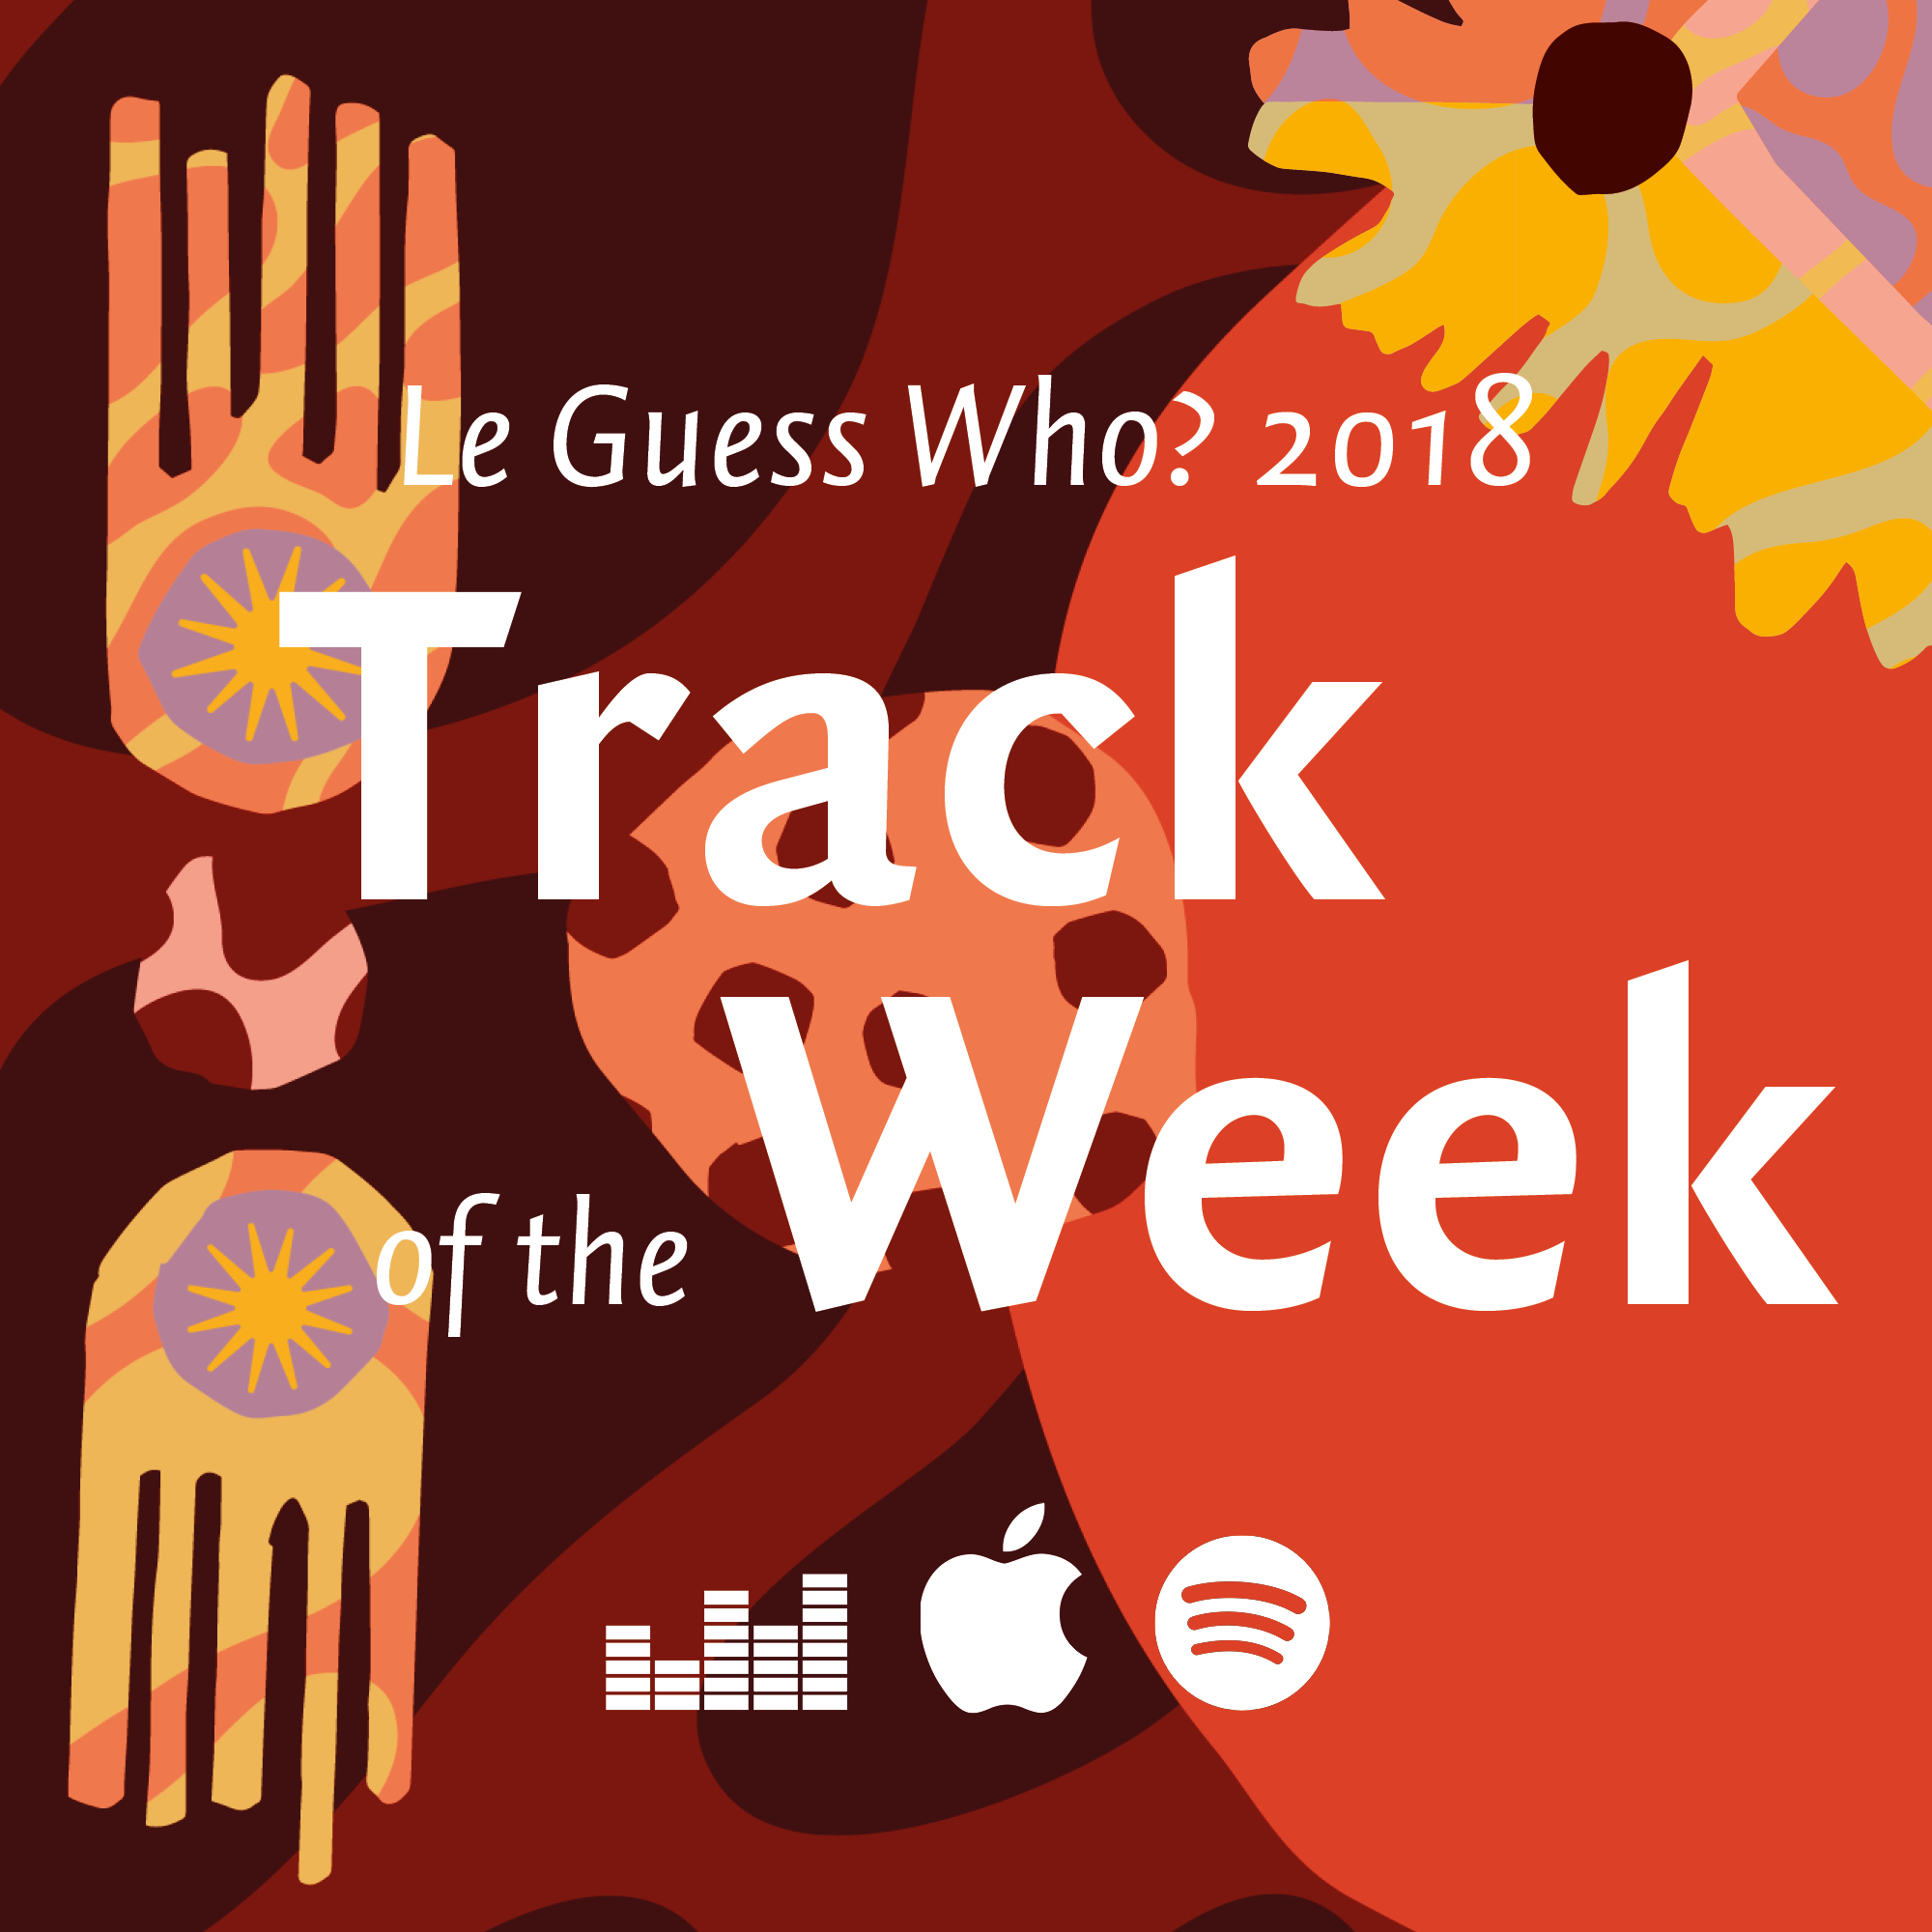 Playlist: Le Guess Who? 2018 - Track of the Week